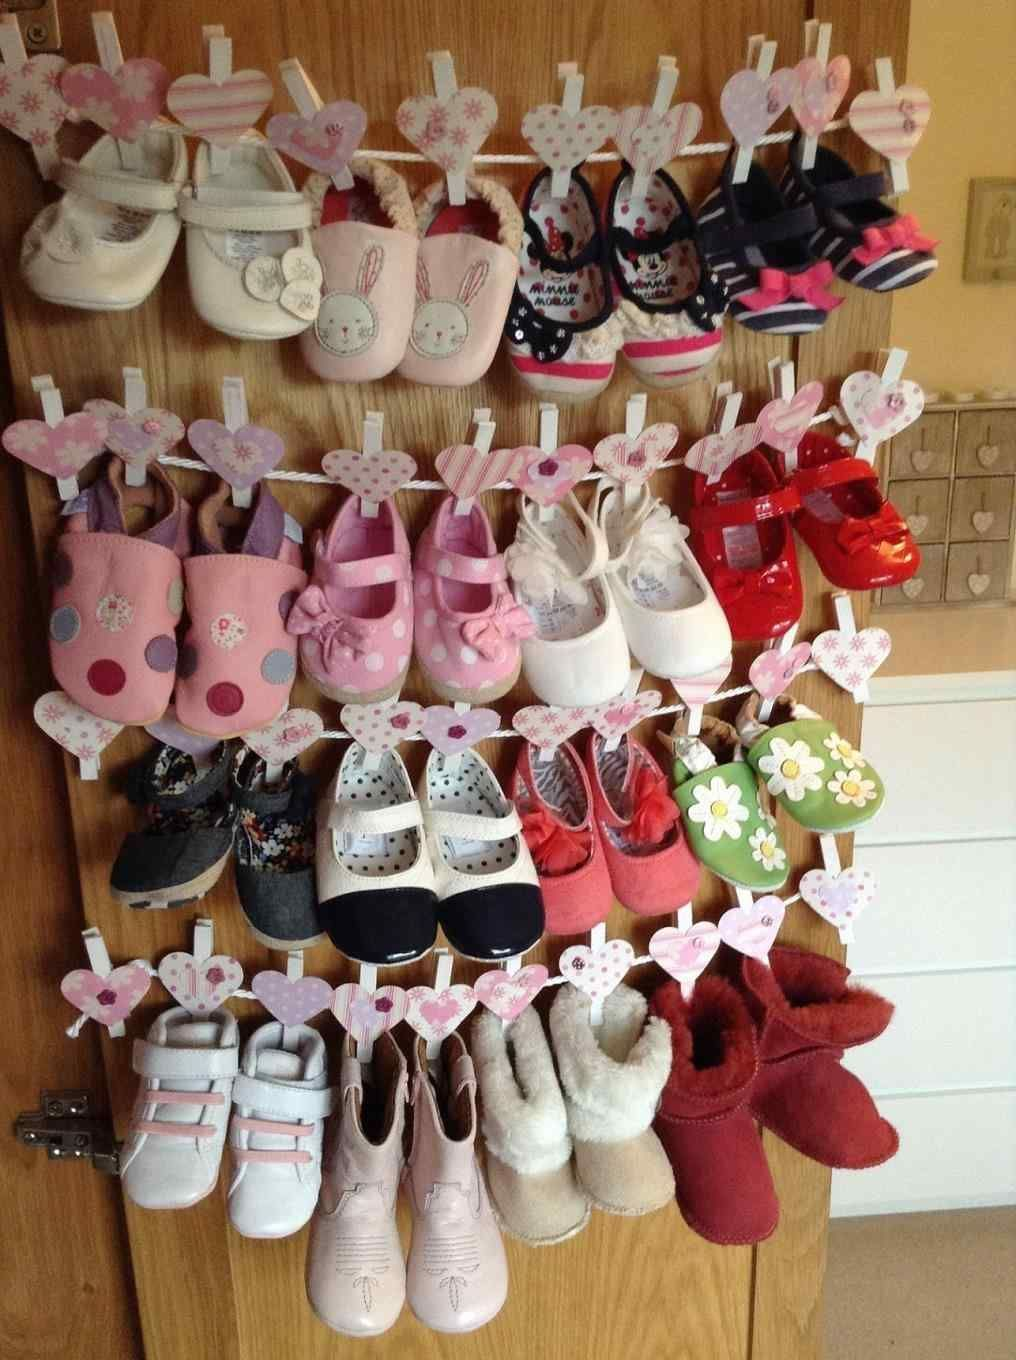 low priced 1fd60 1253a Marvelous Top And Wonderful Baby Shoe Organizer Ideas https   breakpr.com